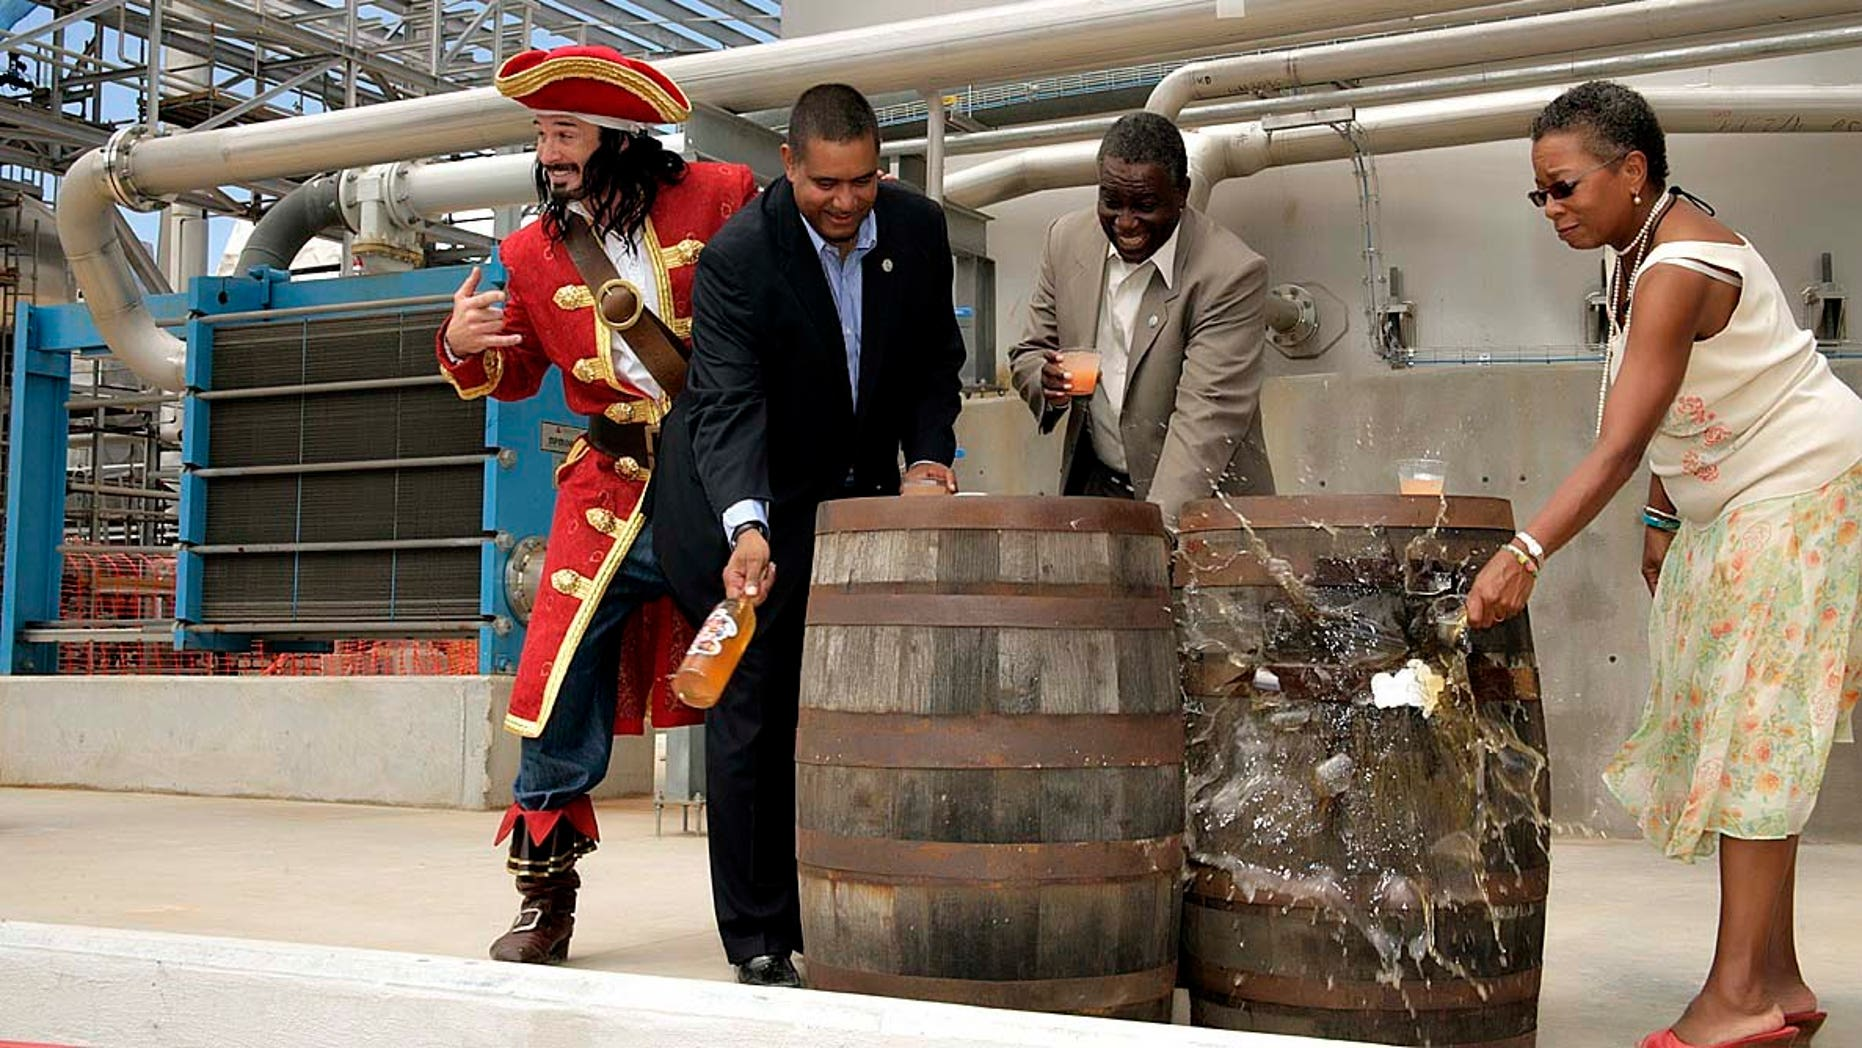 Photo by Ted Davis, The new Captain Morgan Rum Distillery in St. Croix is commissioned.